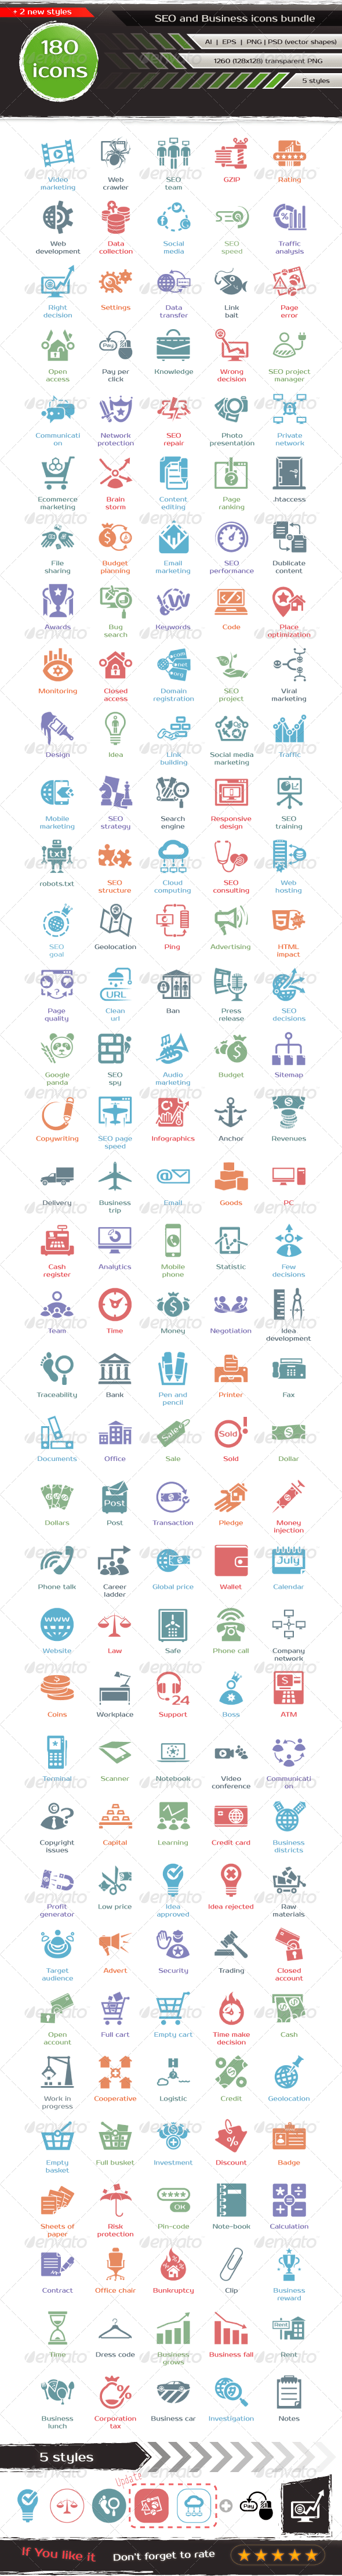 SEO and Business Icons Bundle - Business Icons